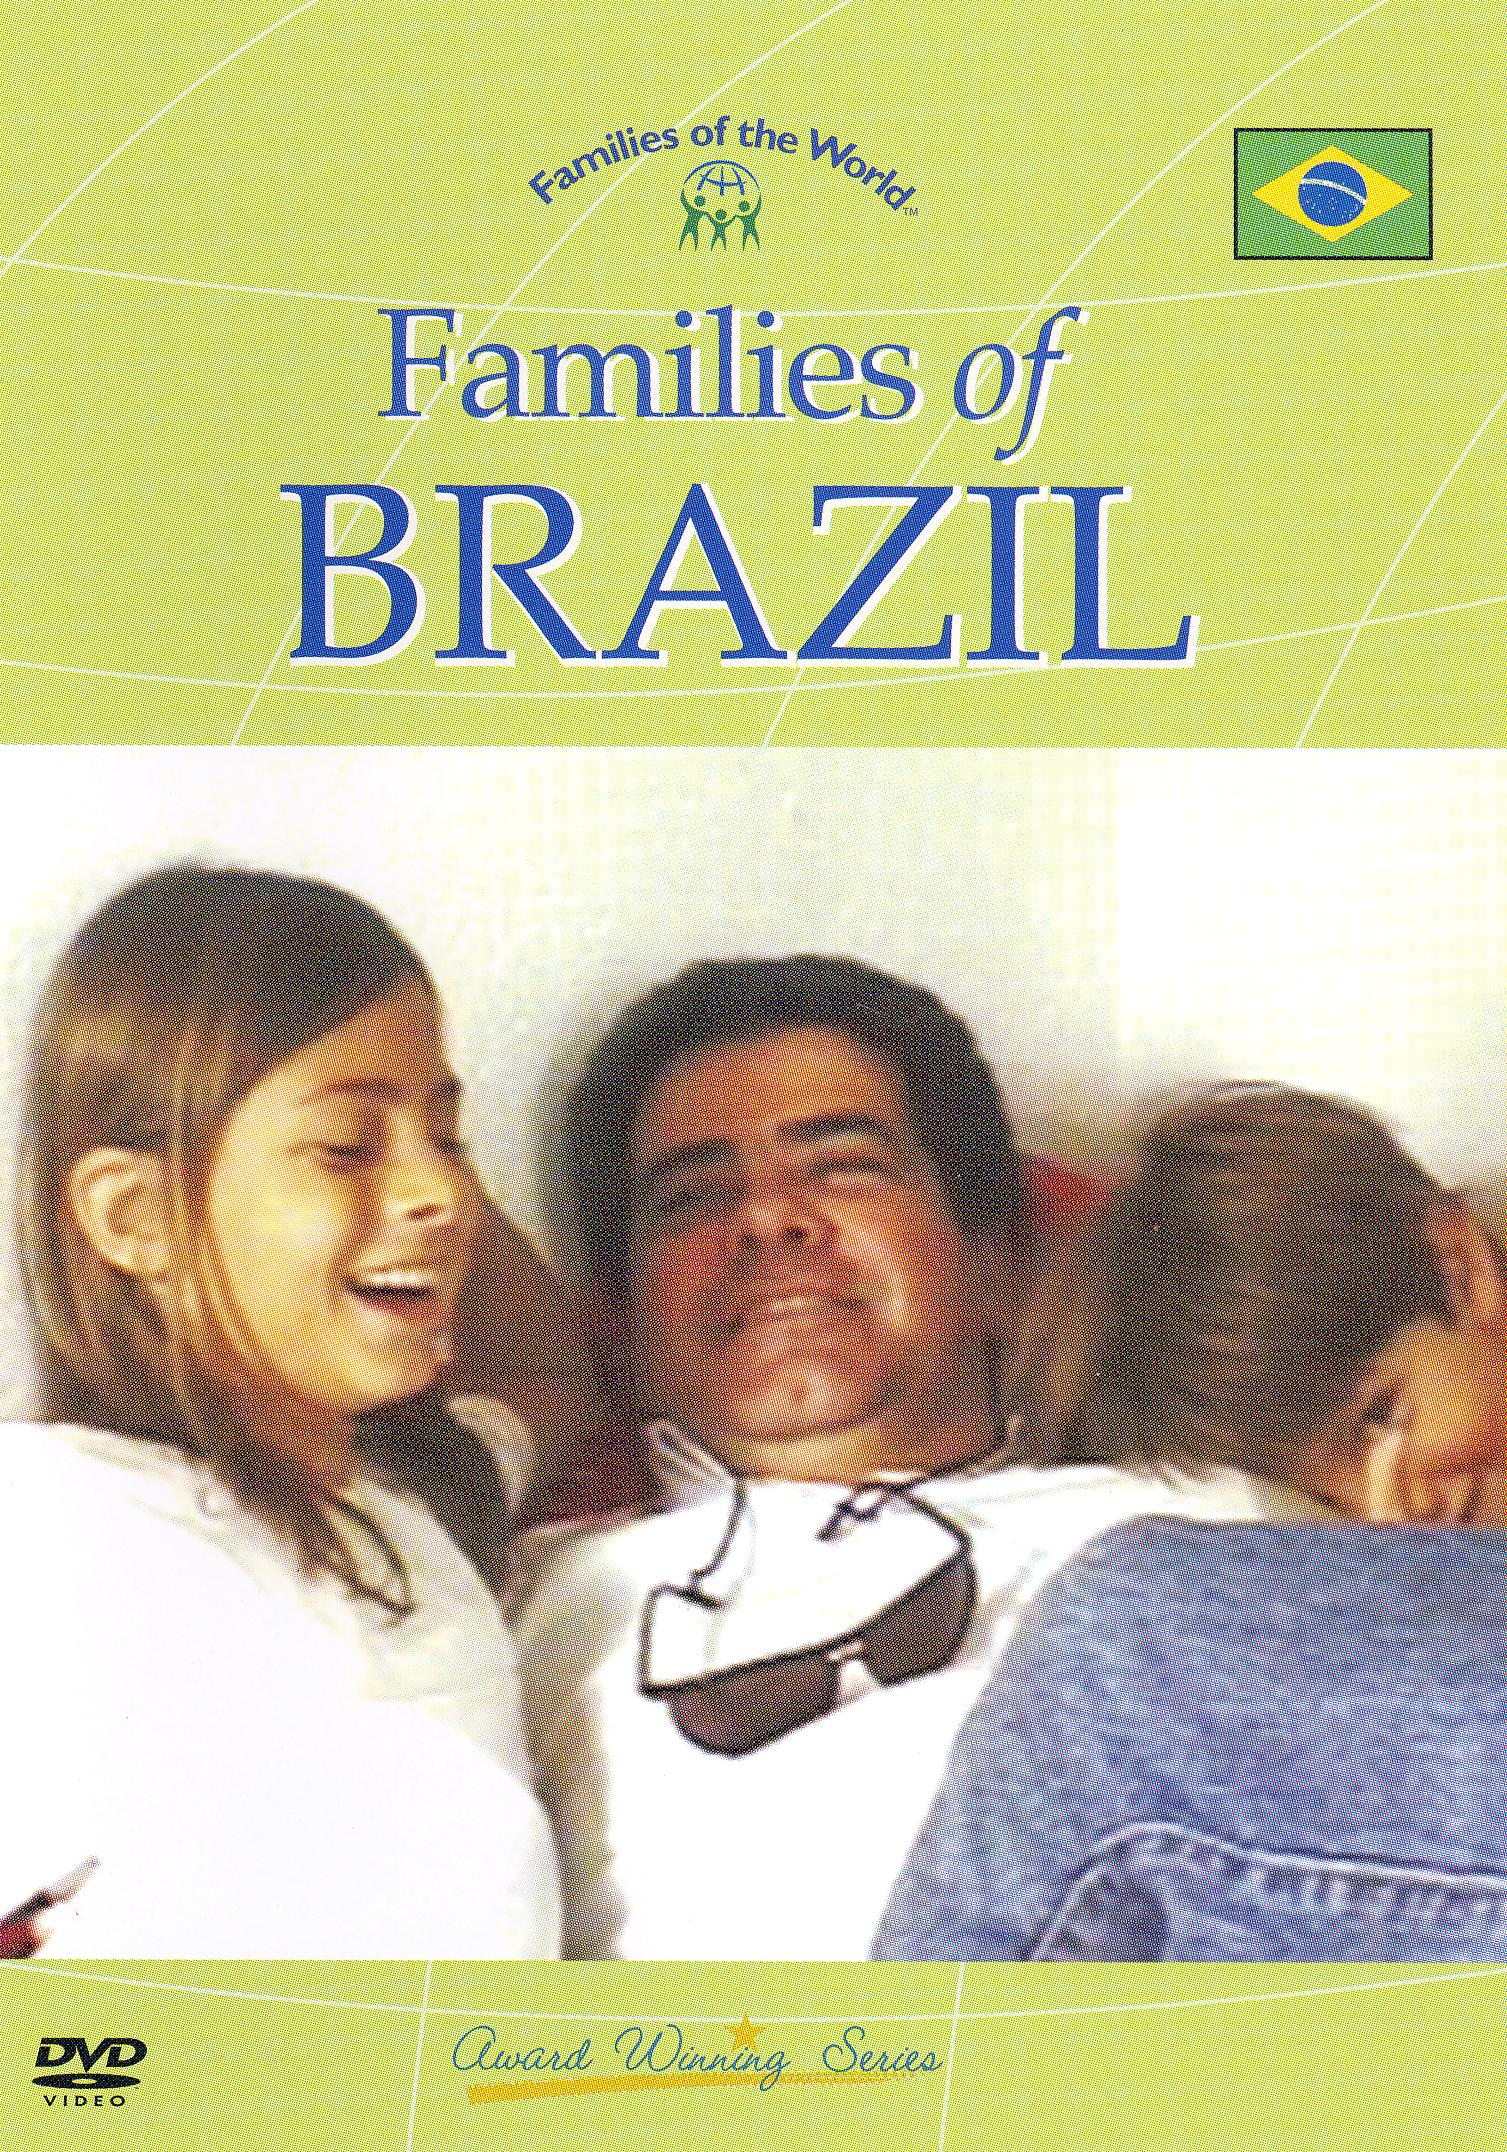 Families of the World: Families of Brazil